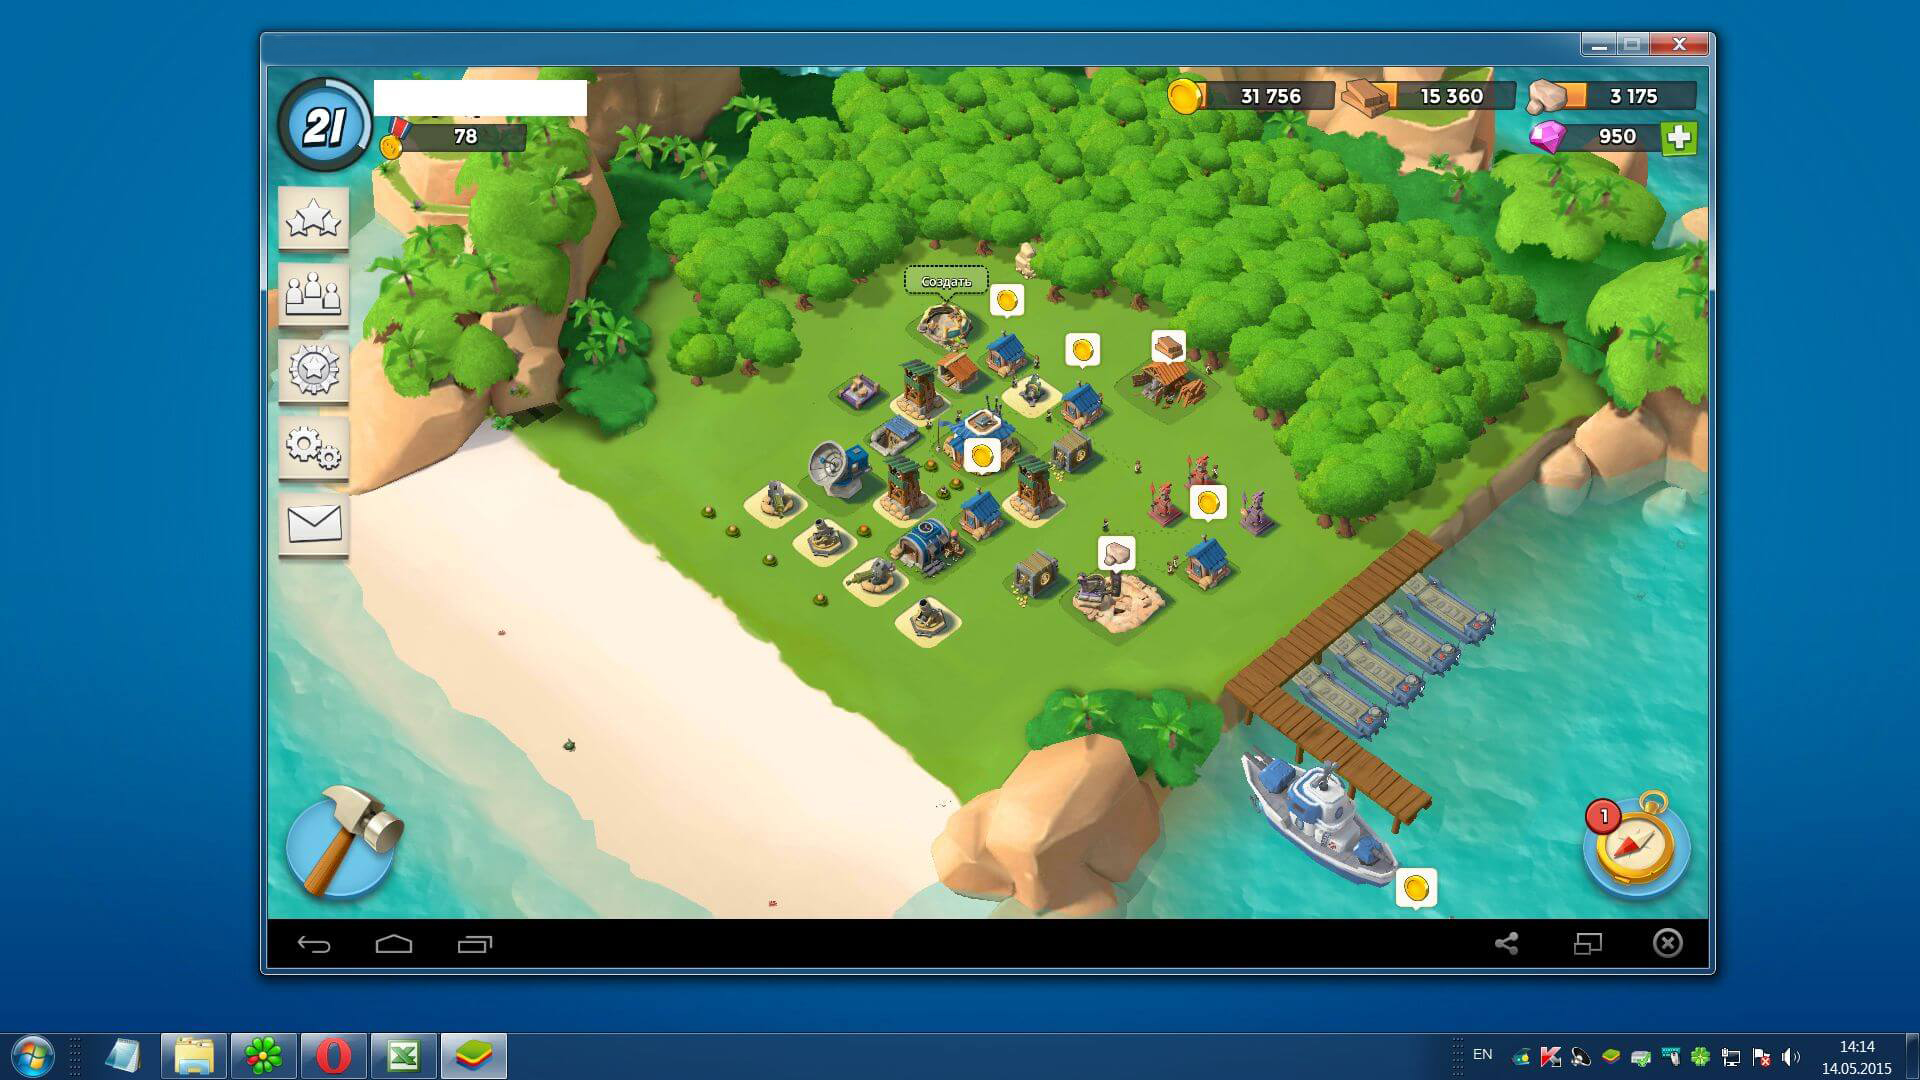 How to download and install Boom Beach for pc on windows 7/8/8.1/10